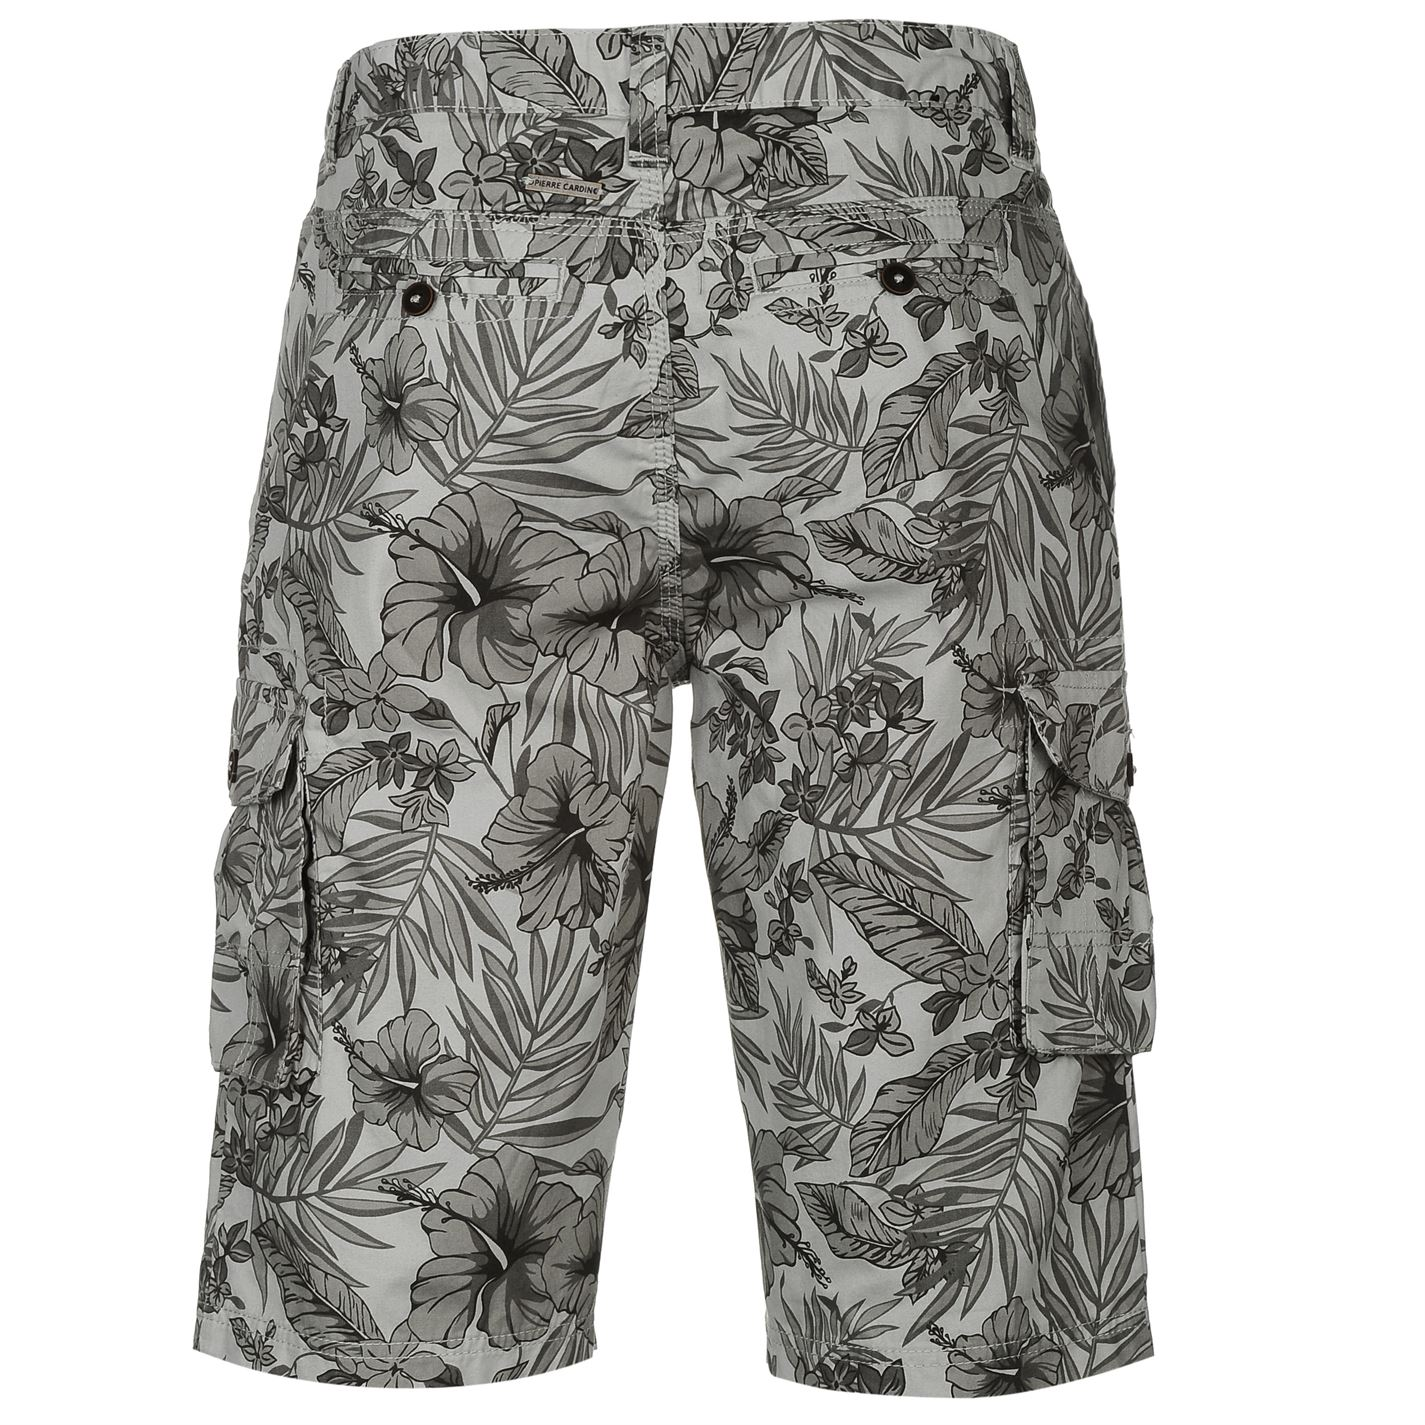 Pierre-Cardin-Cotton-Summer-All-Over-Print-Cargo-Shorts-Mens-Multicoloured-S-XL